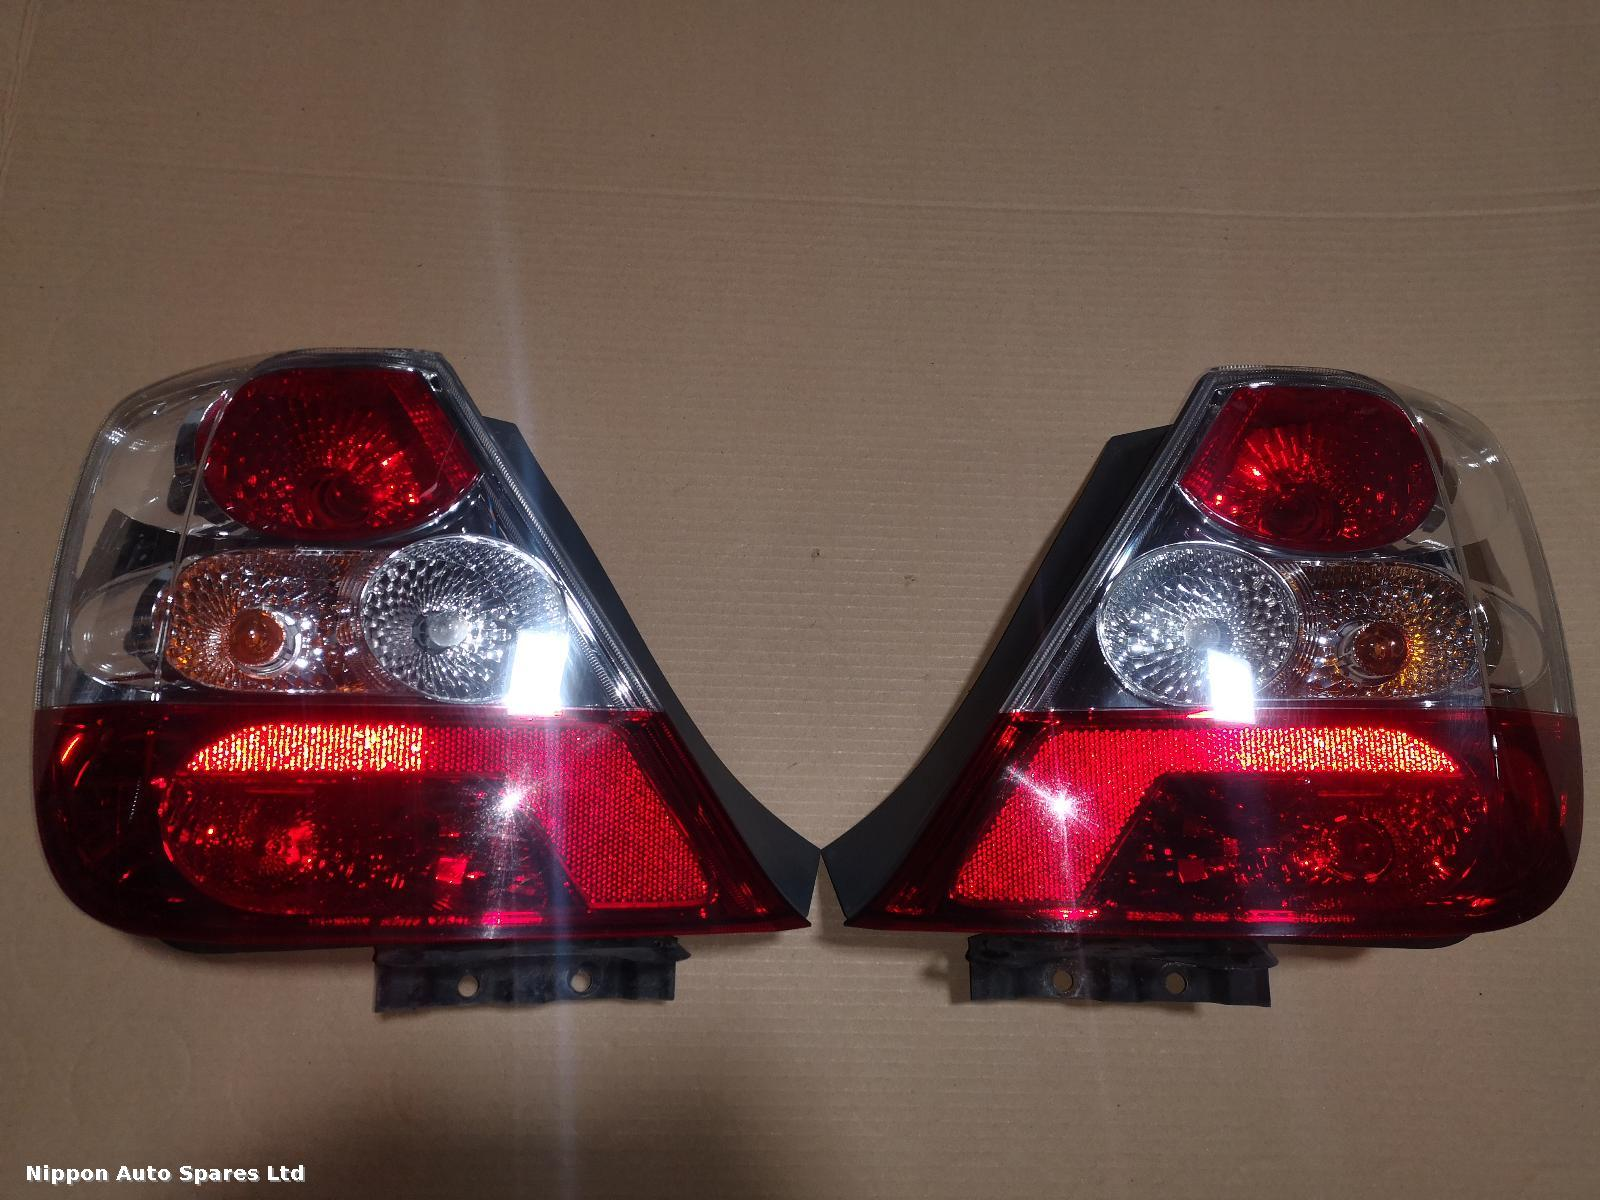 Honda CIVIC L Taillight FACE LIFT 3 DOOR PAIR: 57036